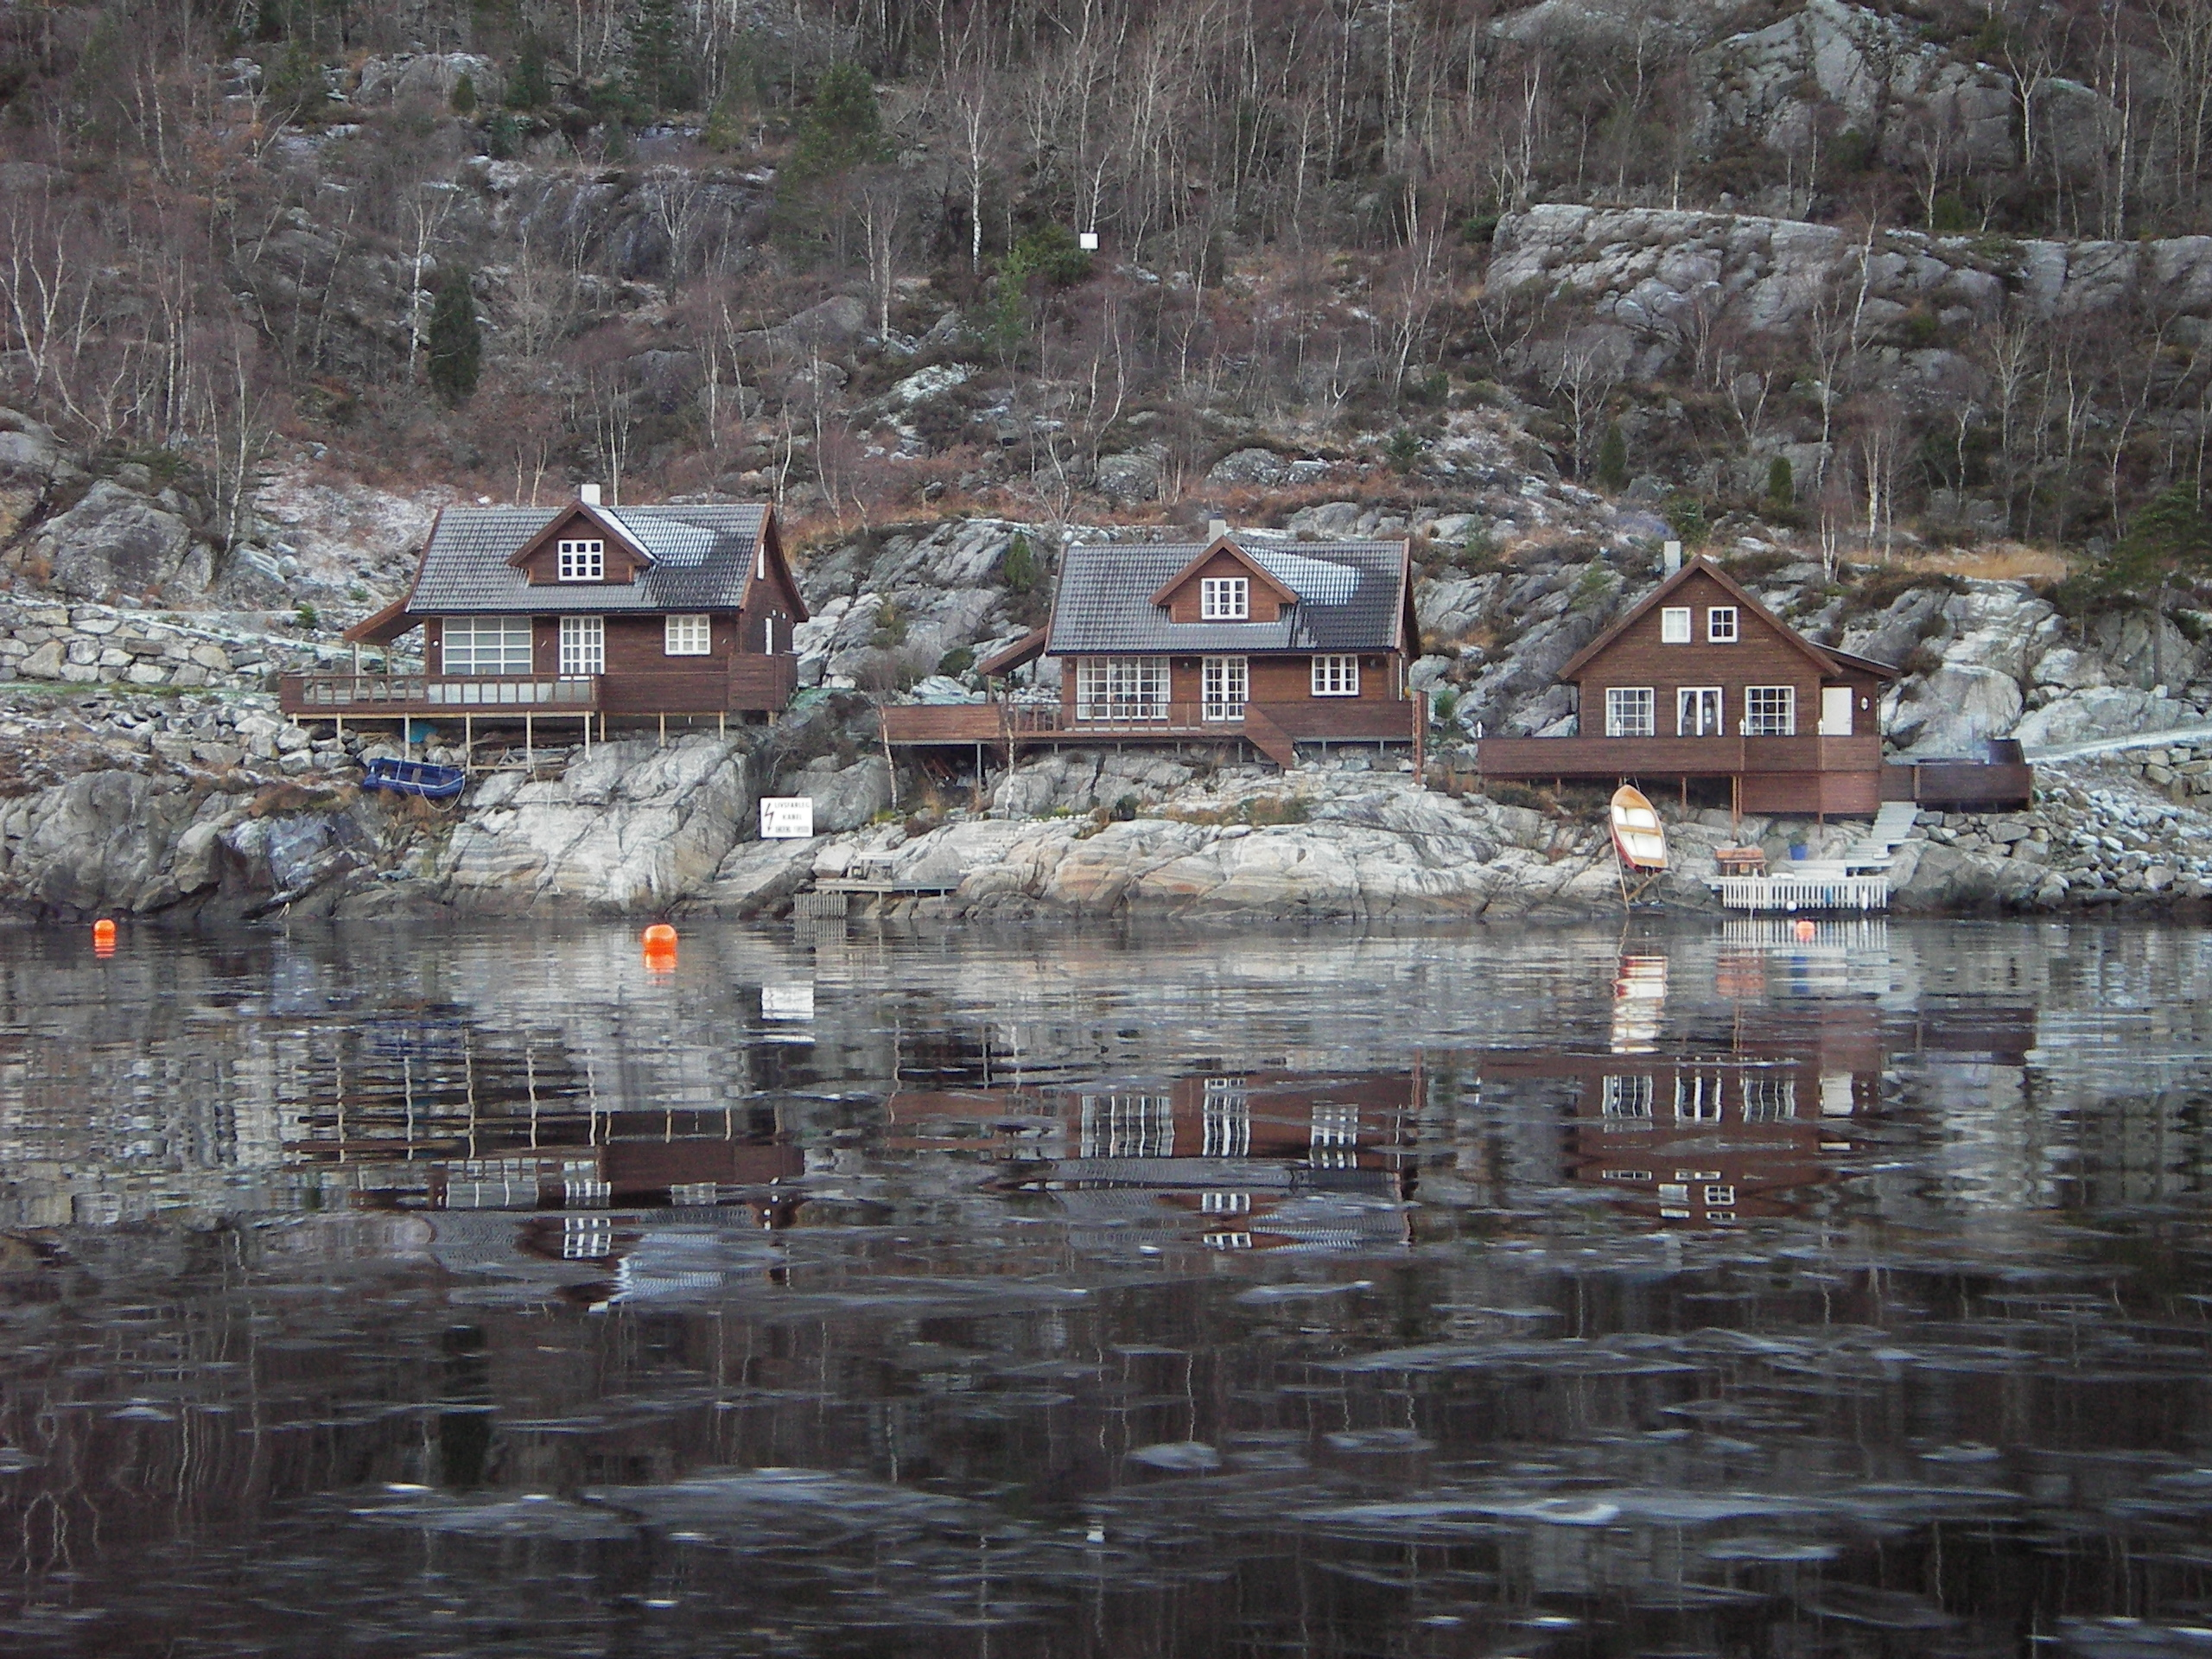 Houses on Shore